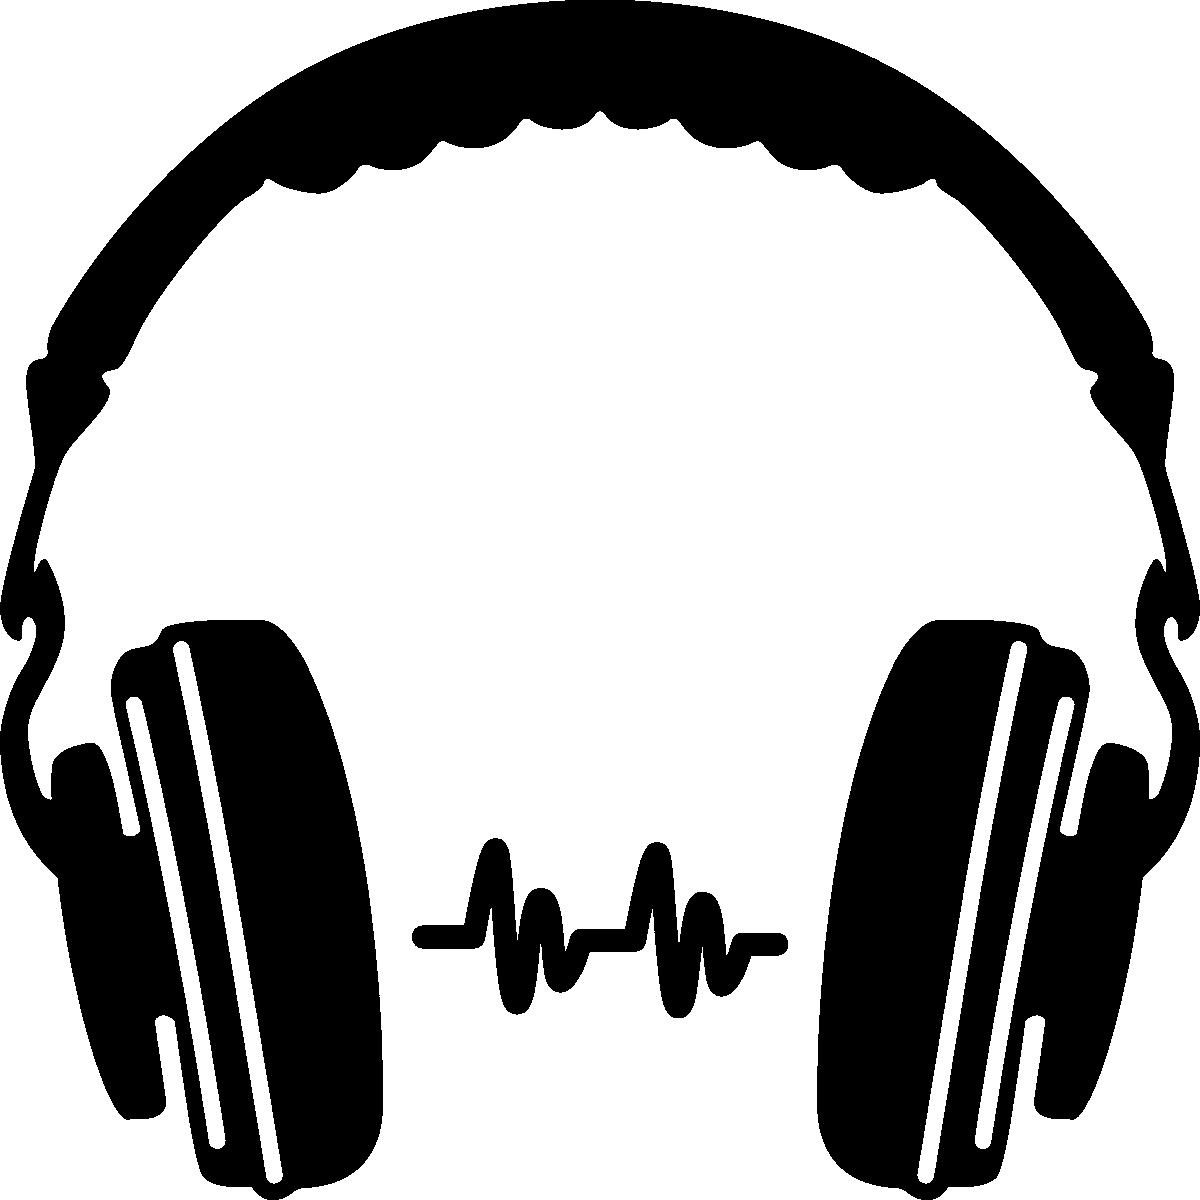 Silhouette clipart music. Headphone at getdrawings com